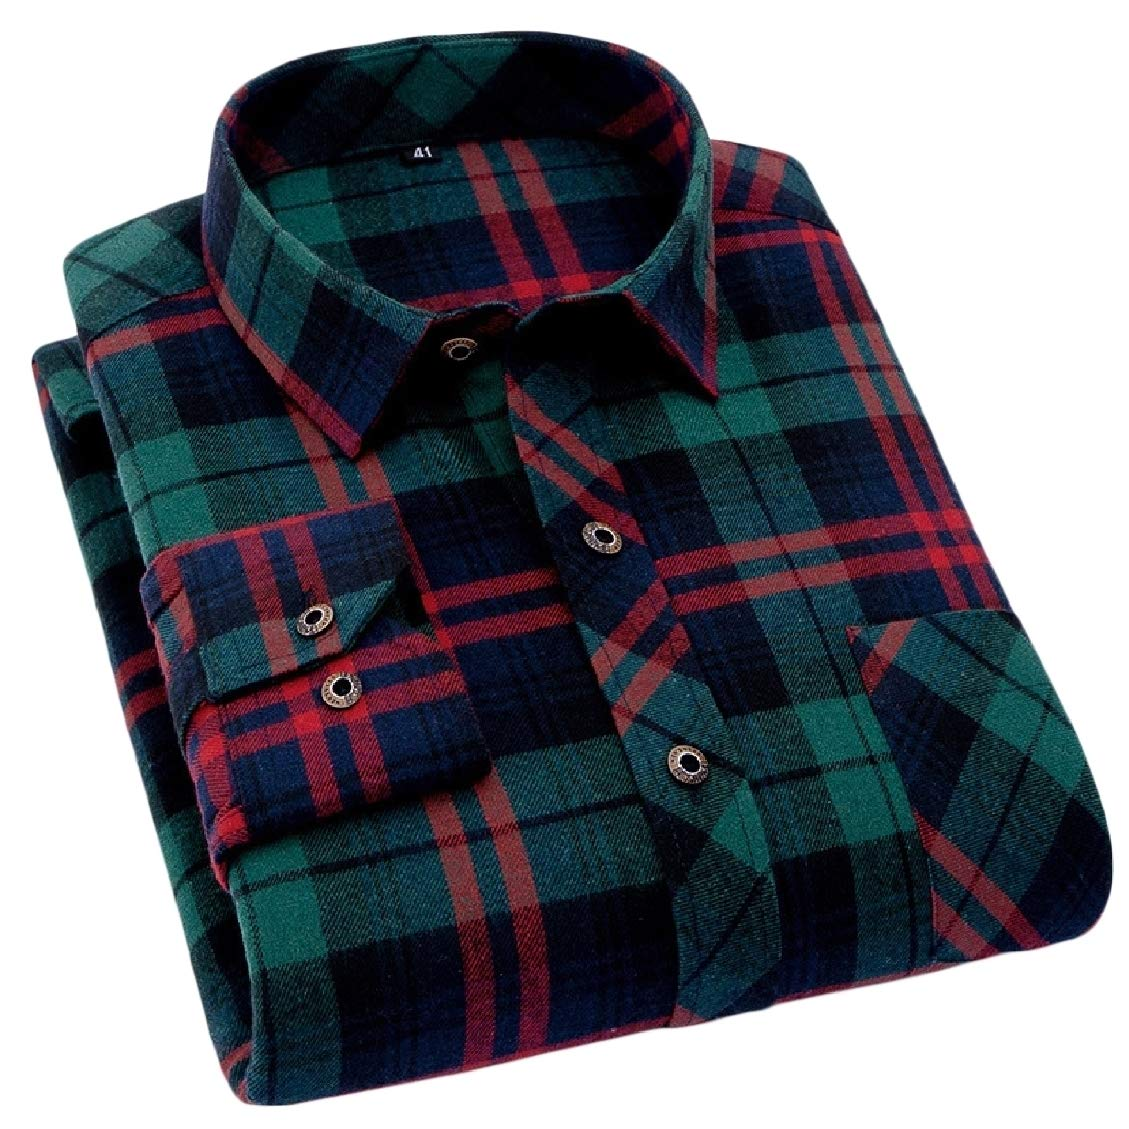 Sweatwater Mens Button-Down Fit Plaid Lapel Collar Long-Sleeve Shirt